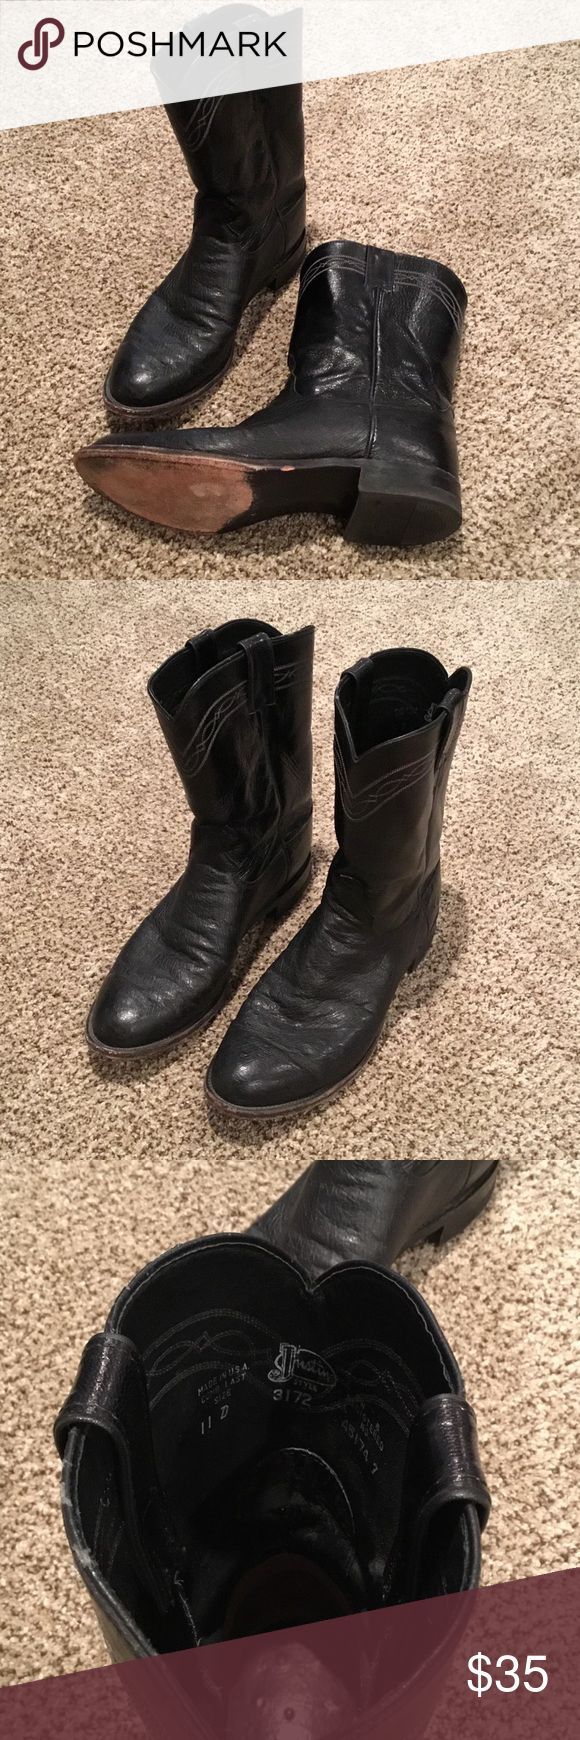 Justin Work Boots Size 11 Justin Work Boot 11 Black Justin Boots Shoes Boots